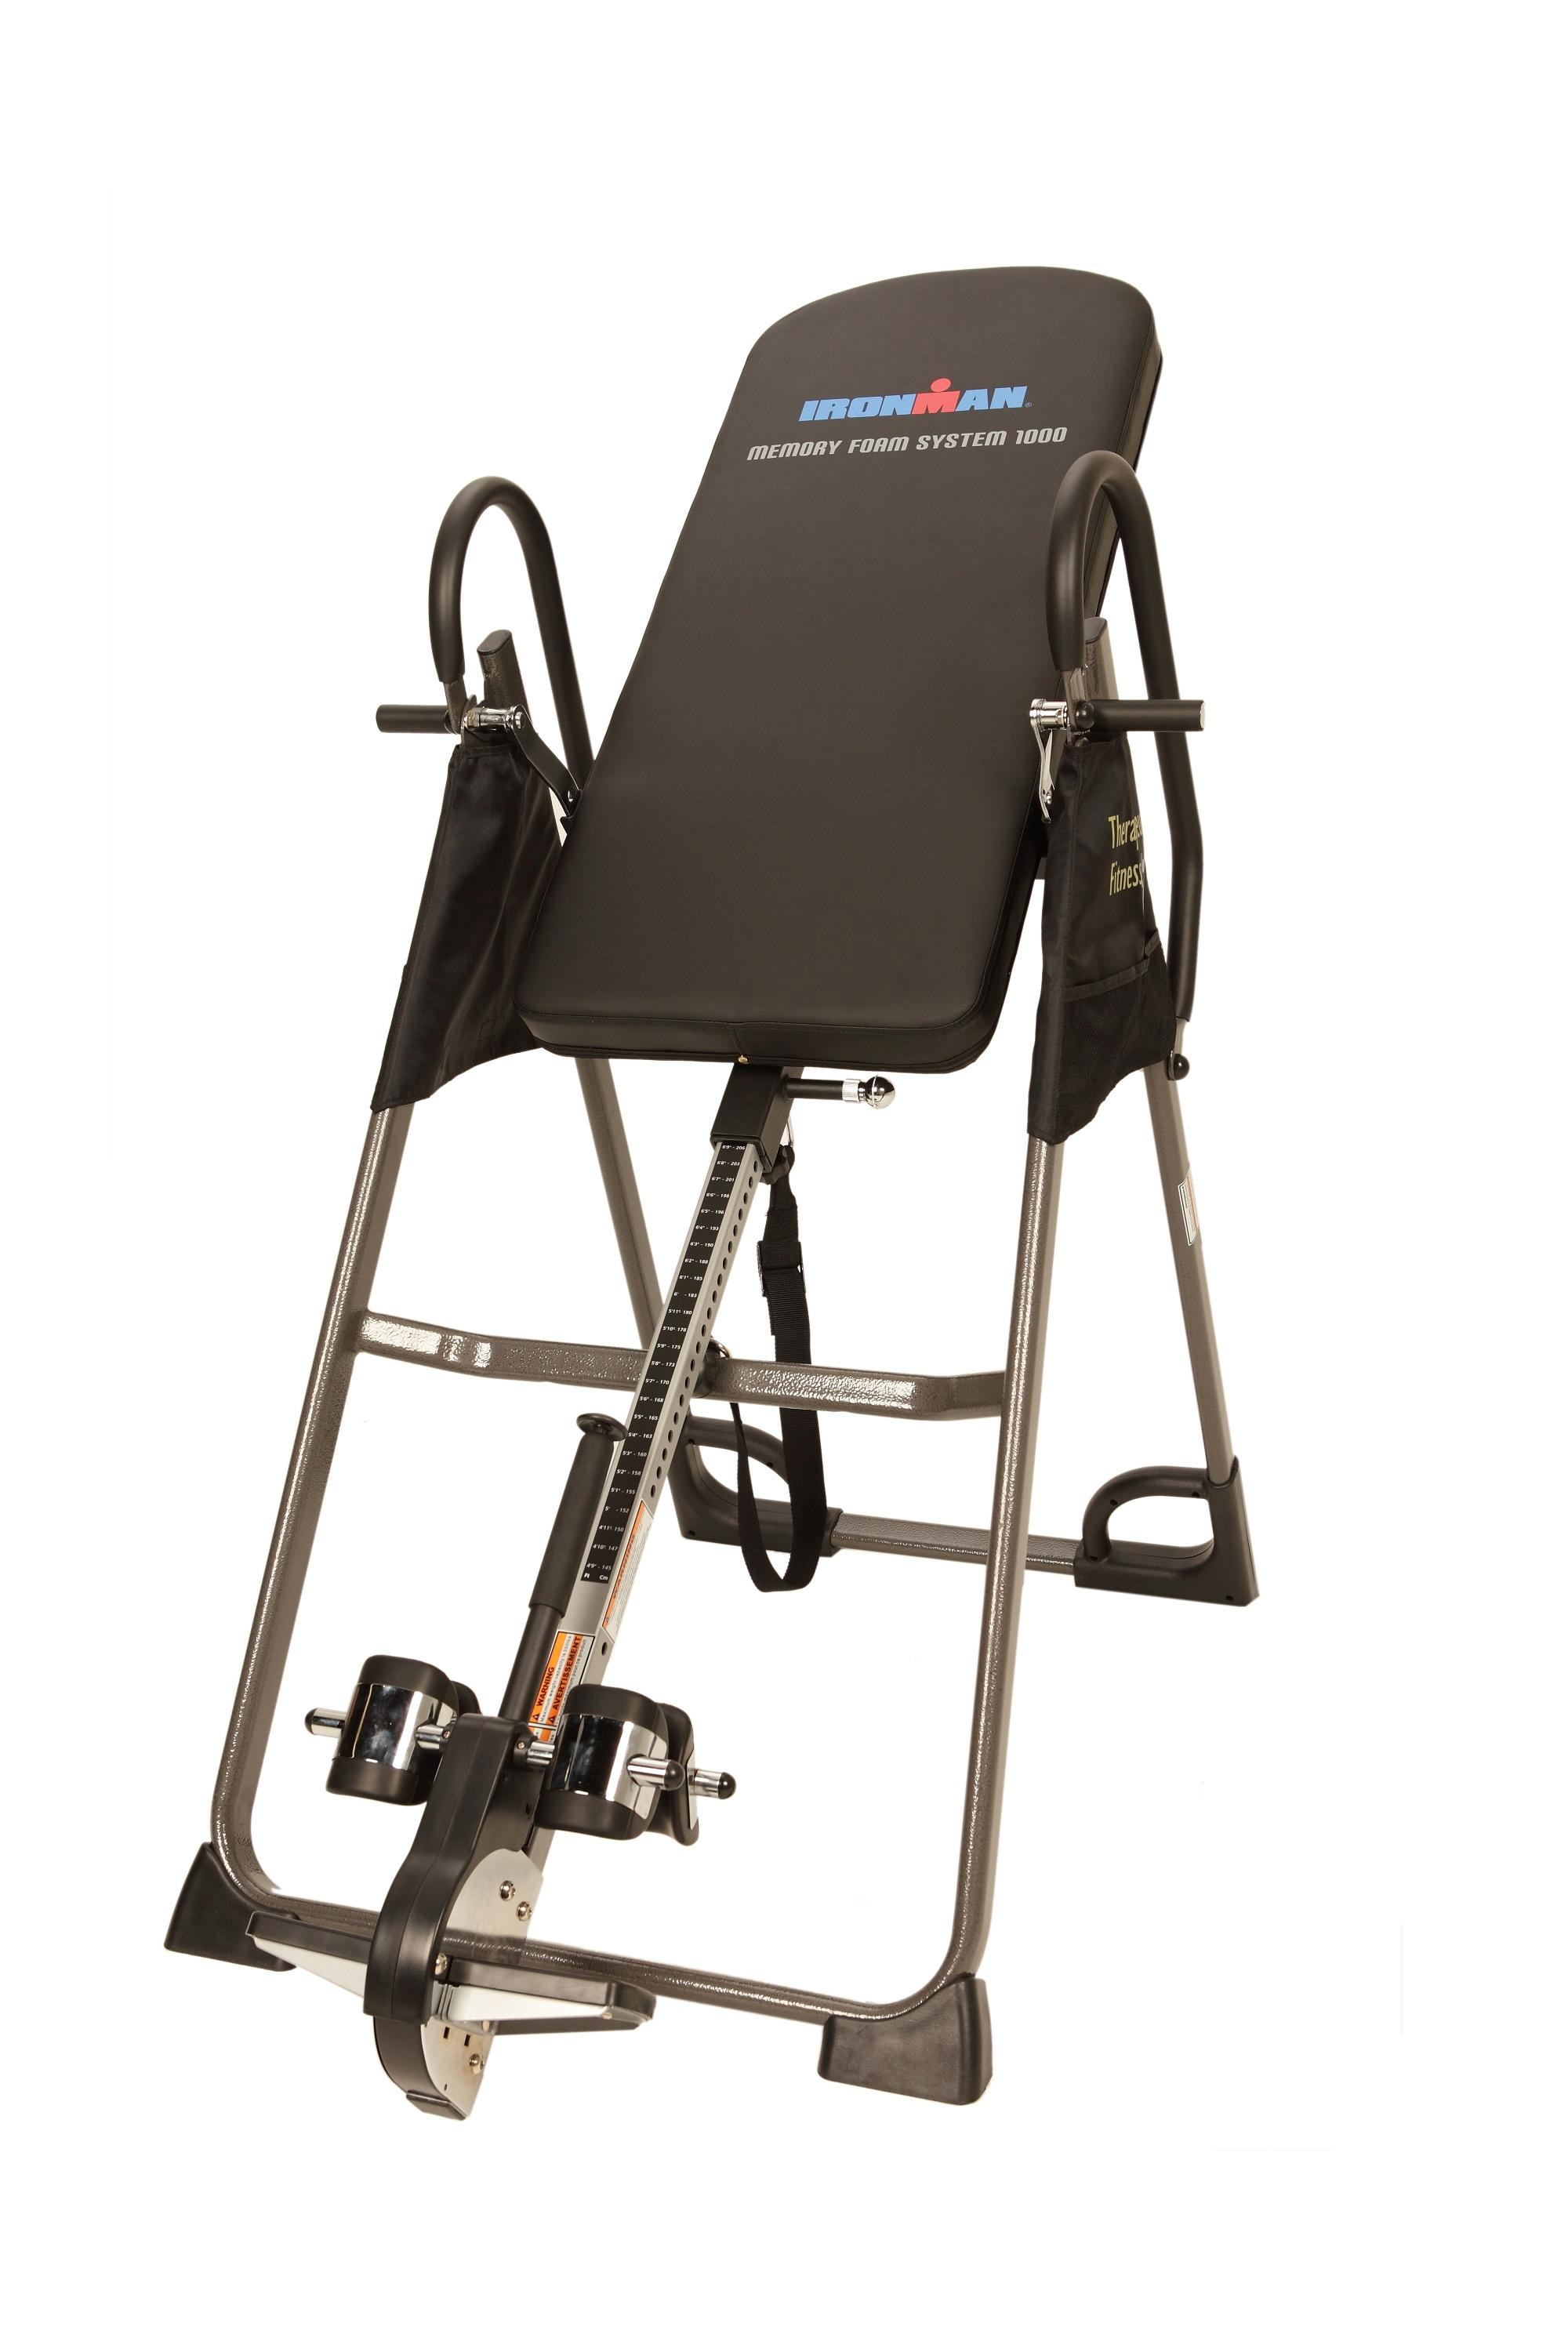 Inversion Chairs Amazon Ironman High Capacity Gravity 3000 Inversion